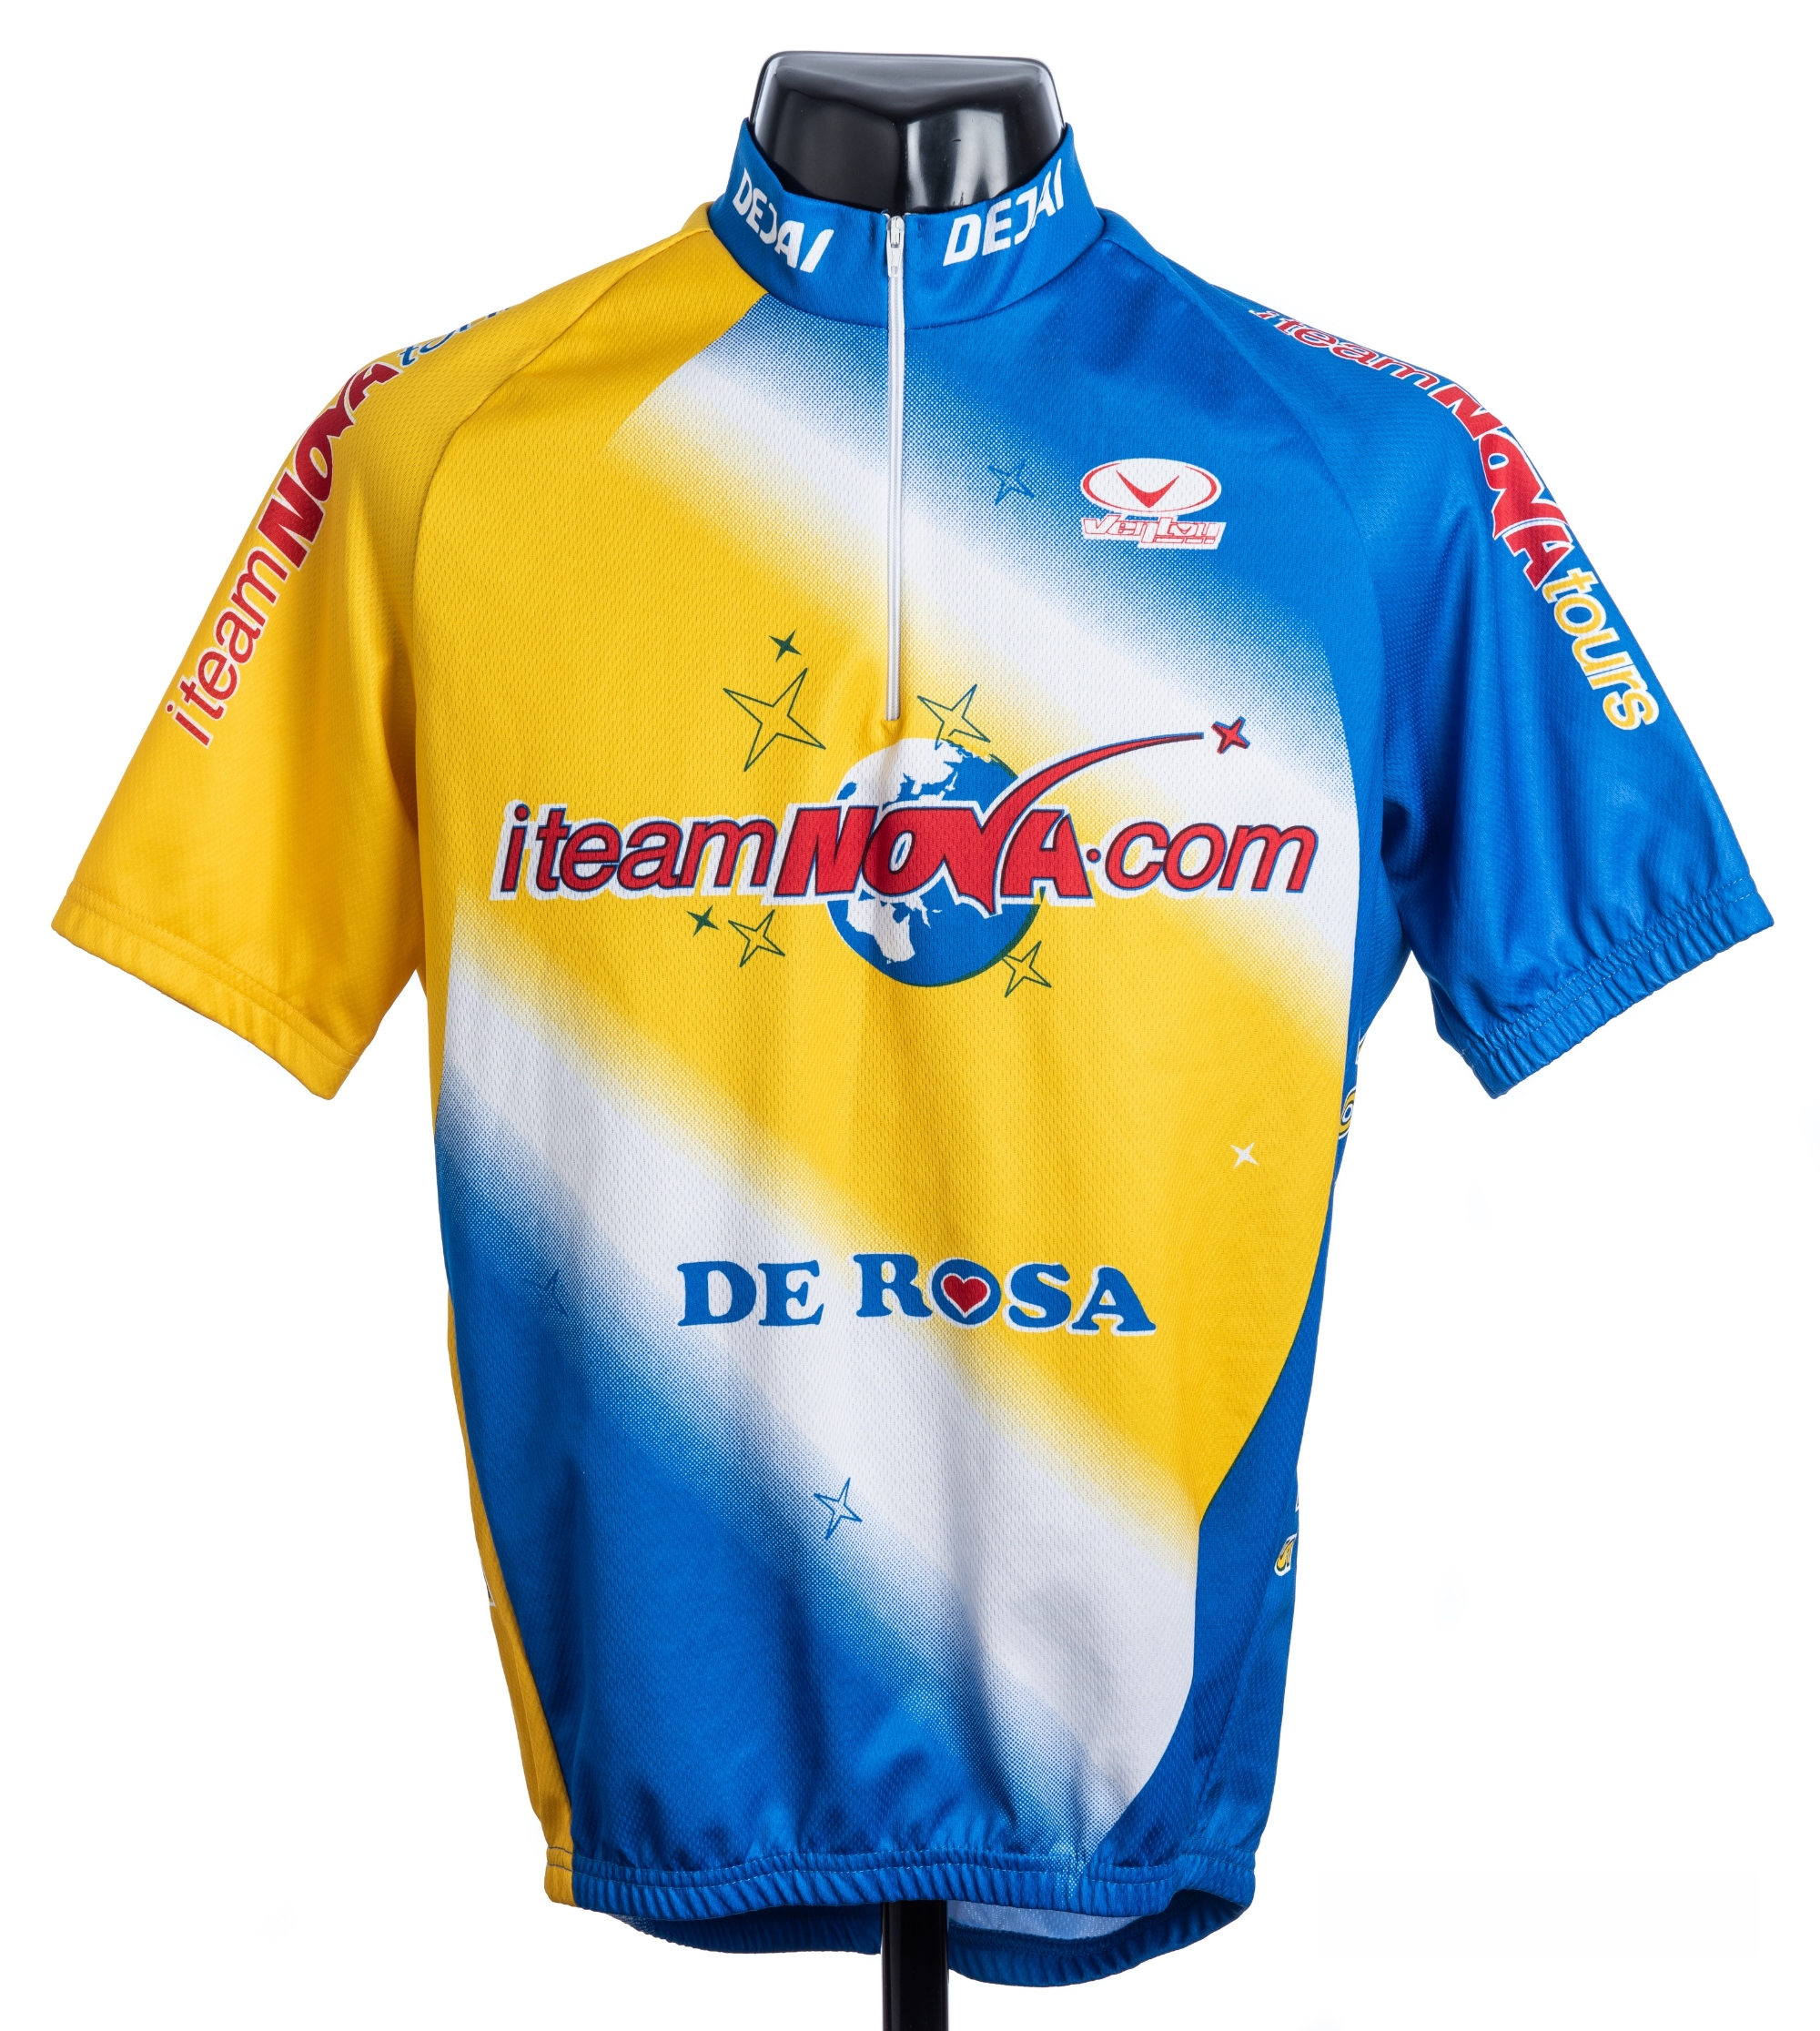 2002 blue, yellow and white i-Team Nova De RosaCycling race jersey, scarce, polyester short-sleeved - Image 3 of 4